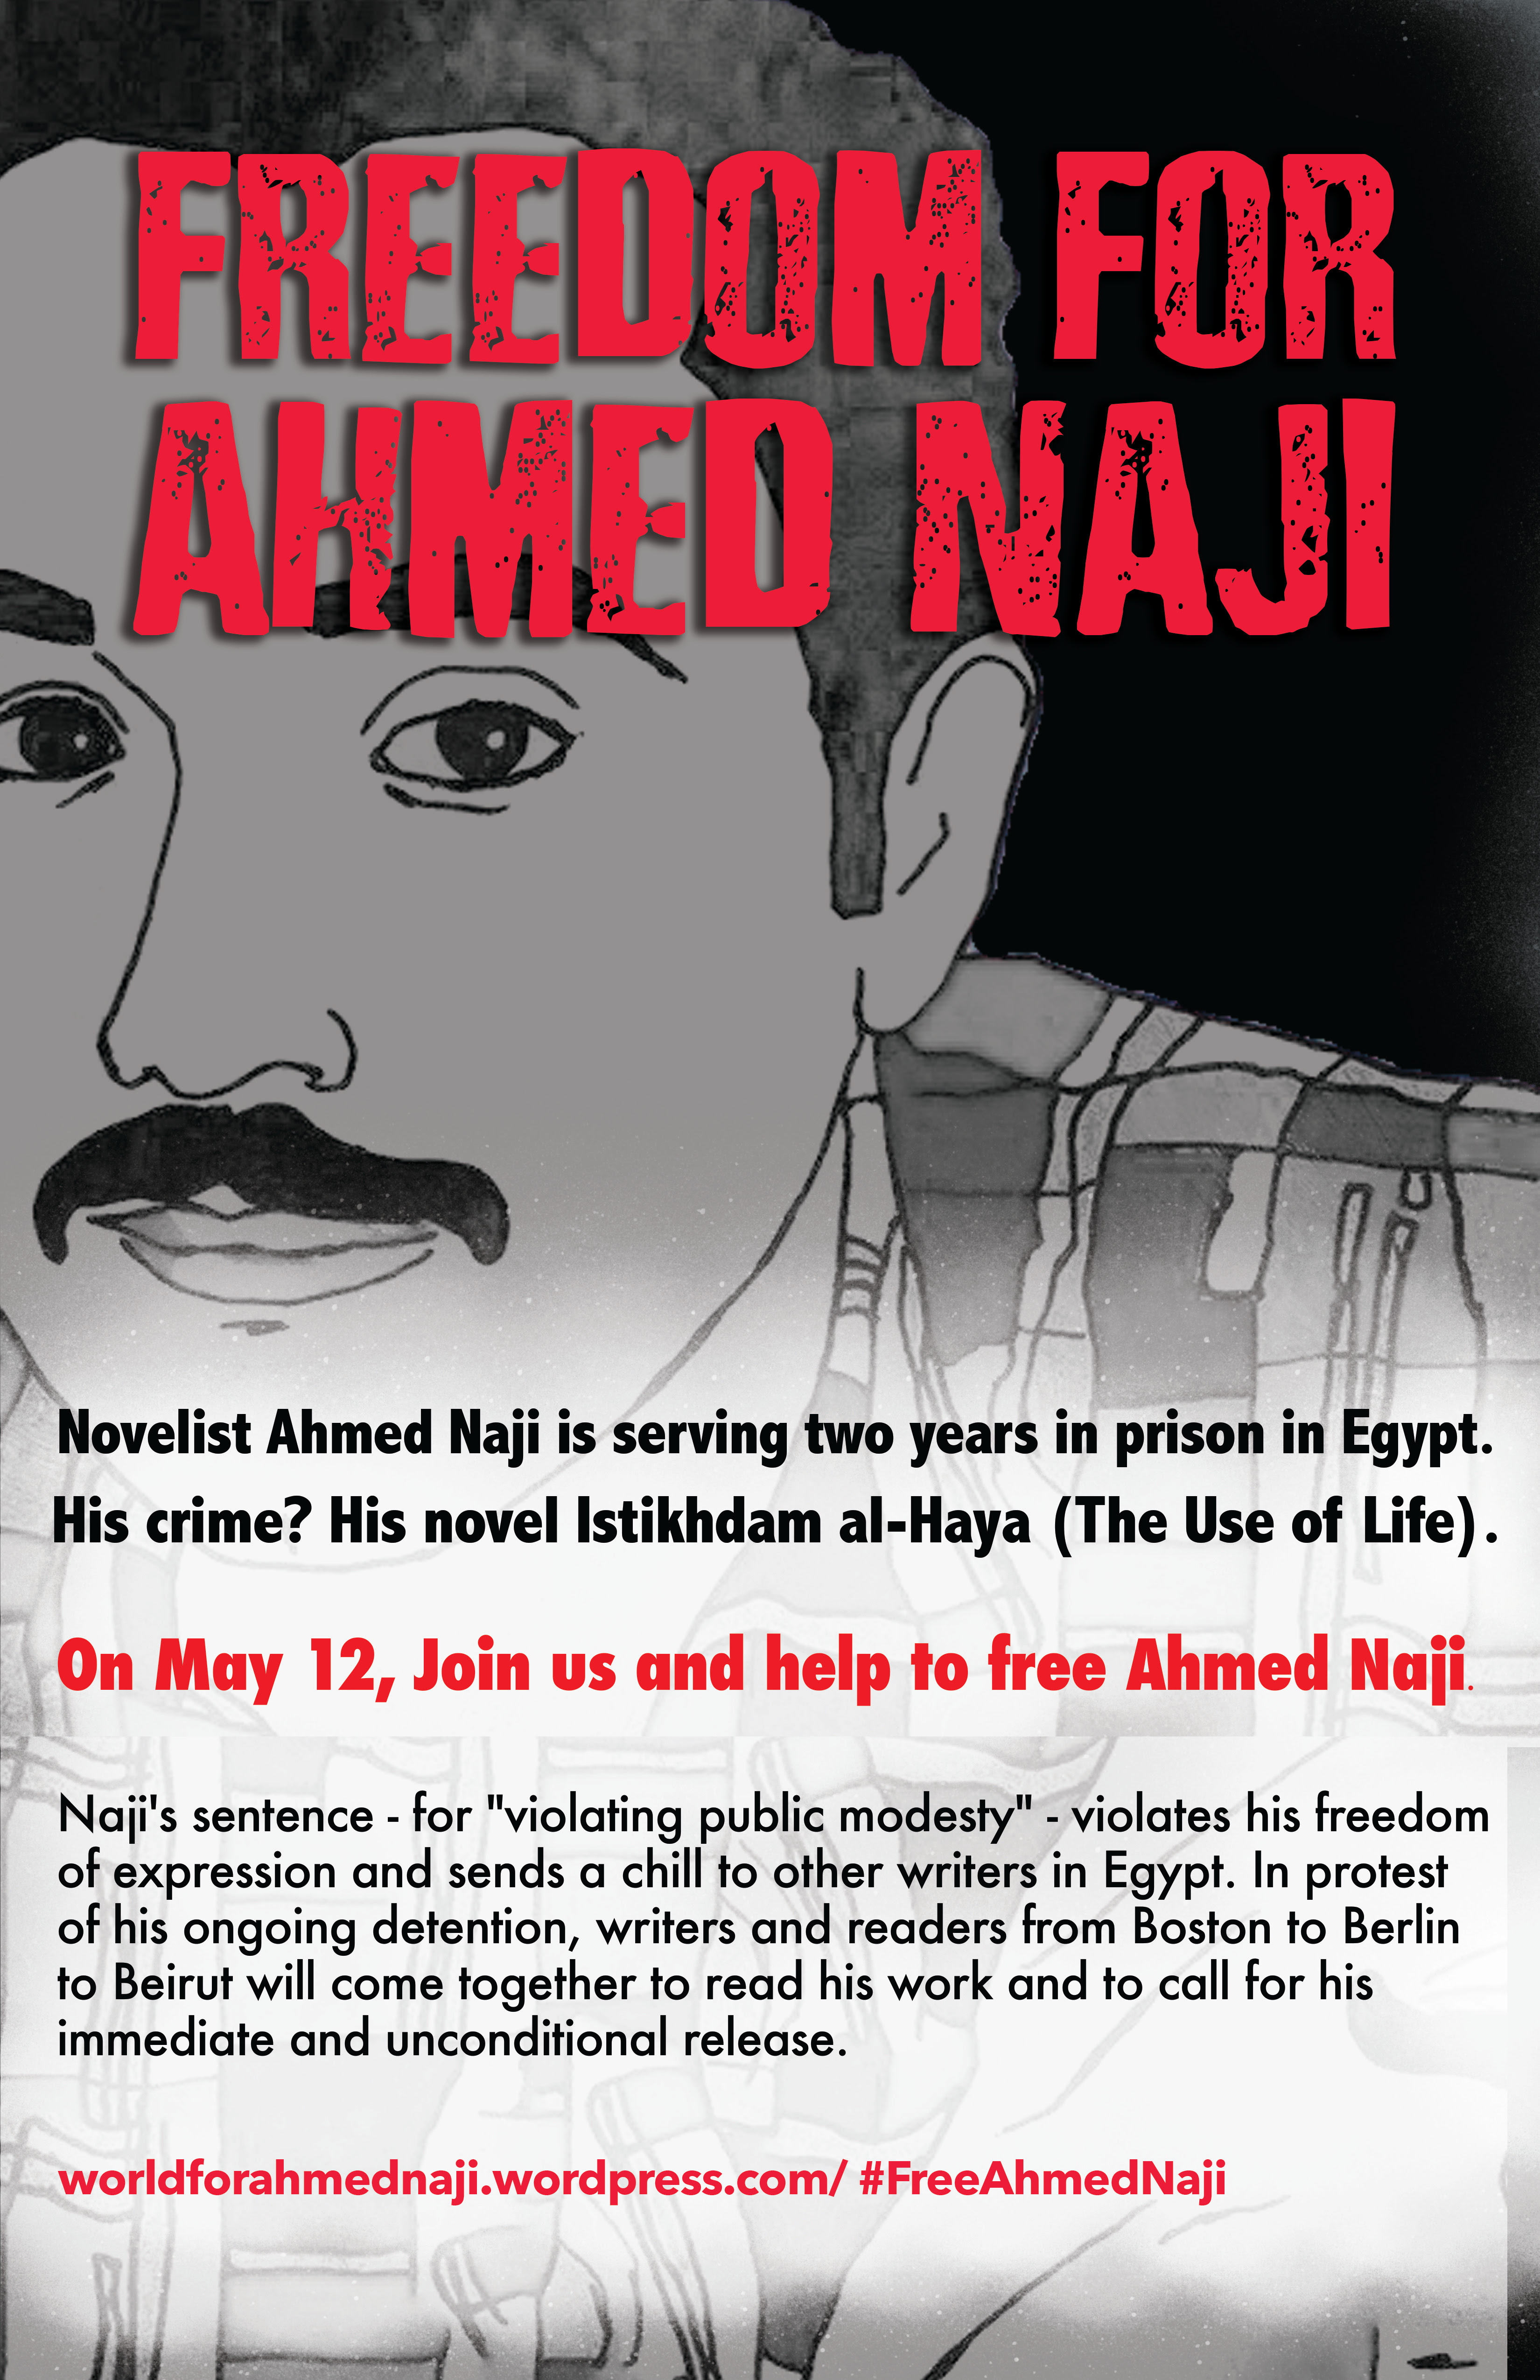 Freedom for Ahmed Naji - The Tahrir Institute for Middle East Policy